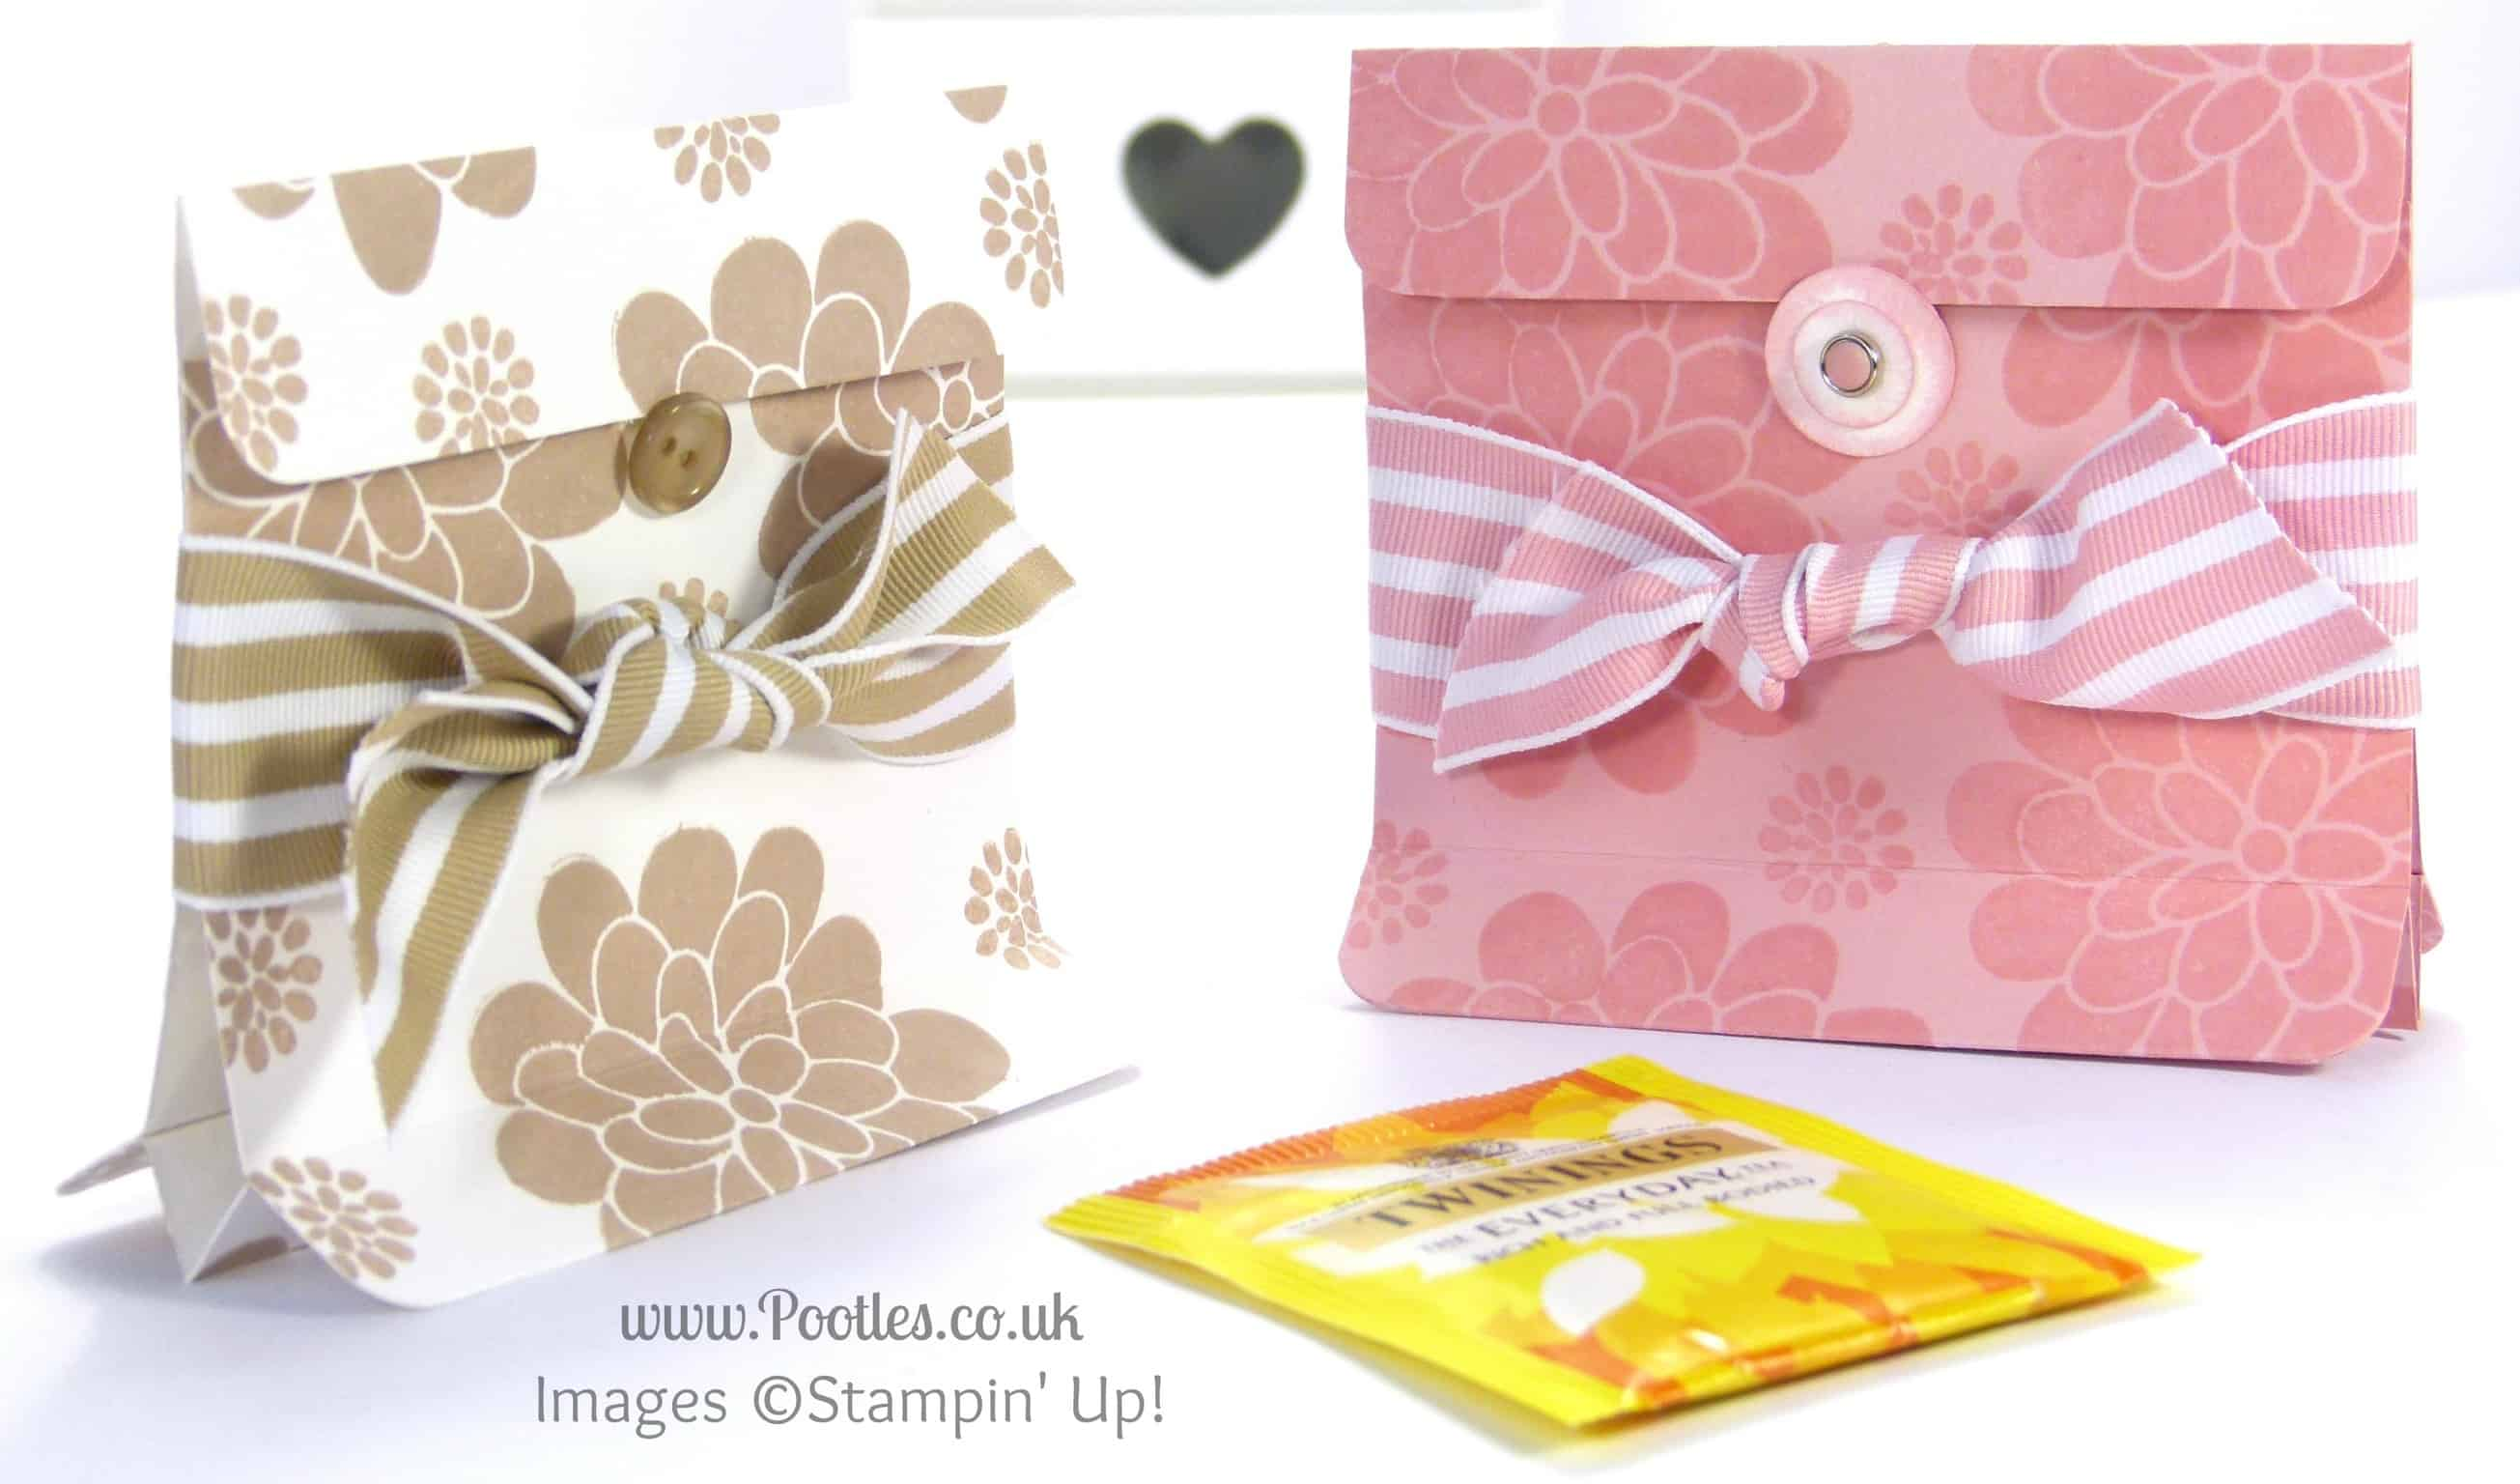 Stampin' Up! UK Demonstrator Pootles - Freestanding Tea Bag Holder Tutorial